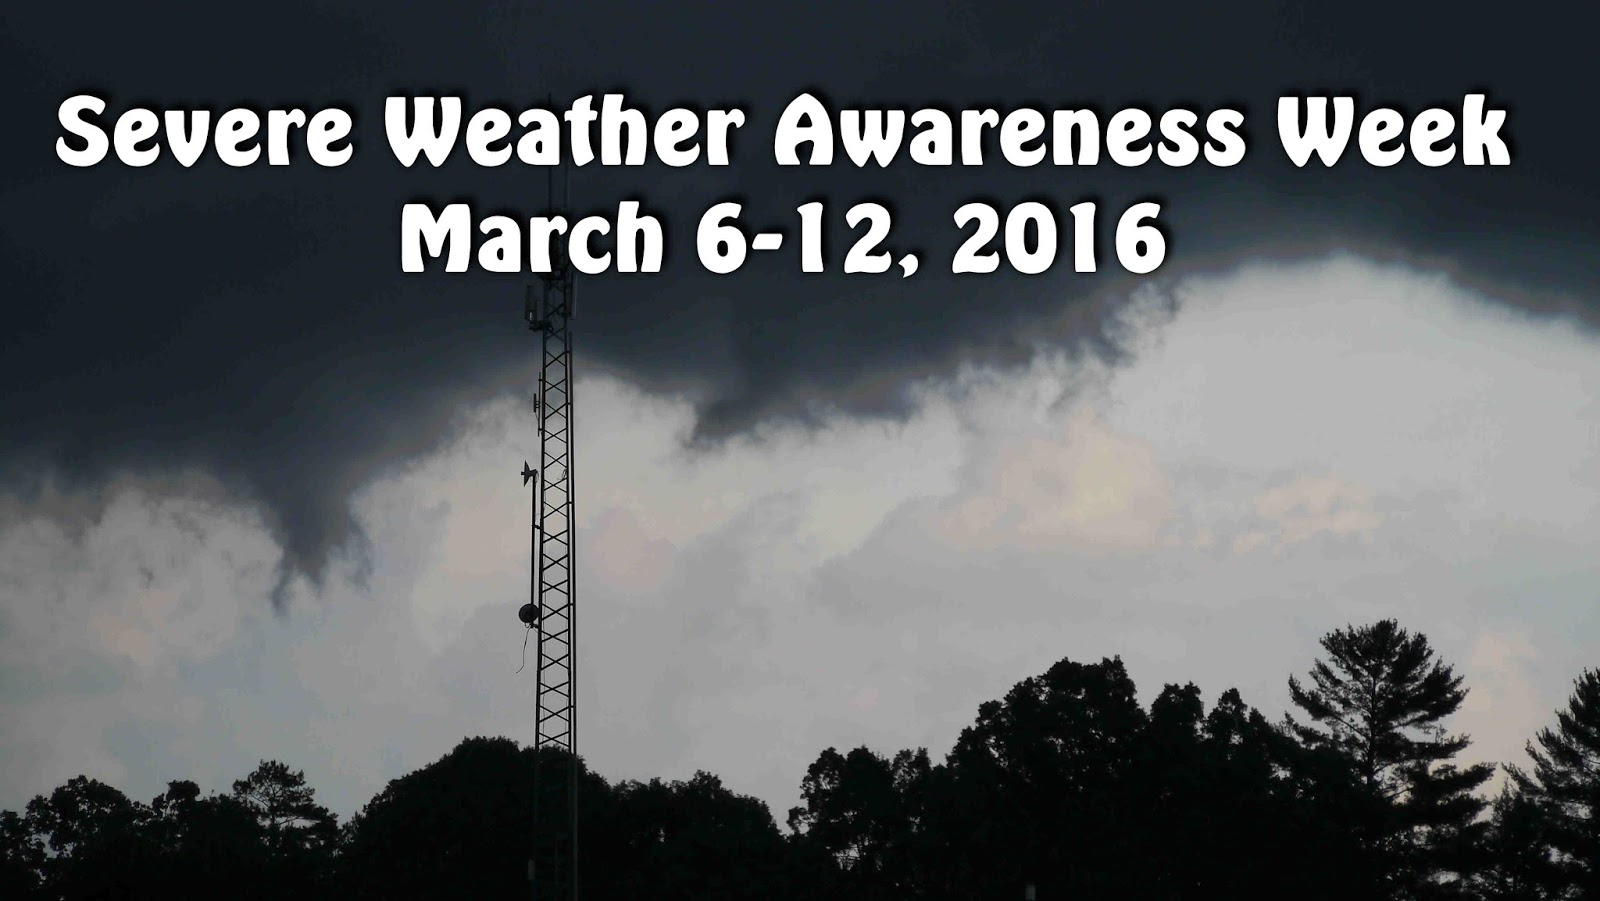 2016 Severe Weather Awareness Week